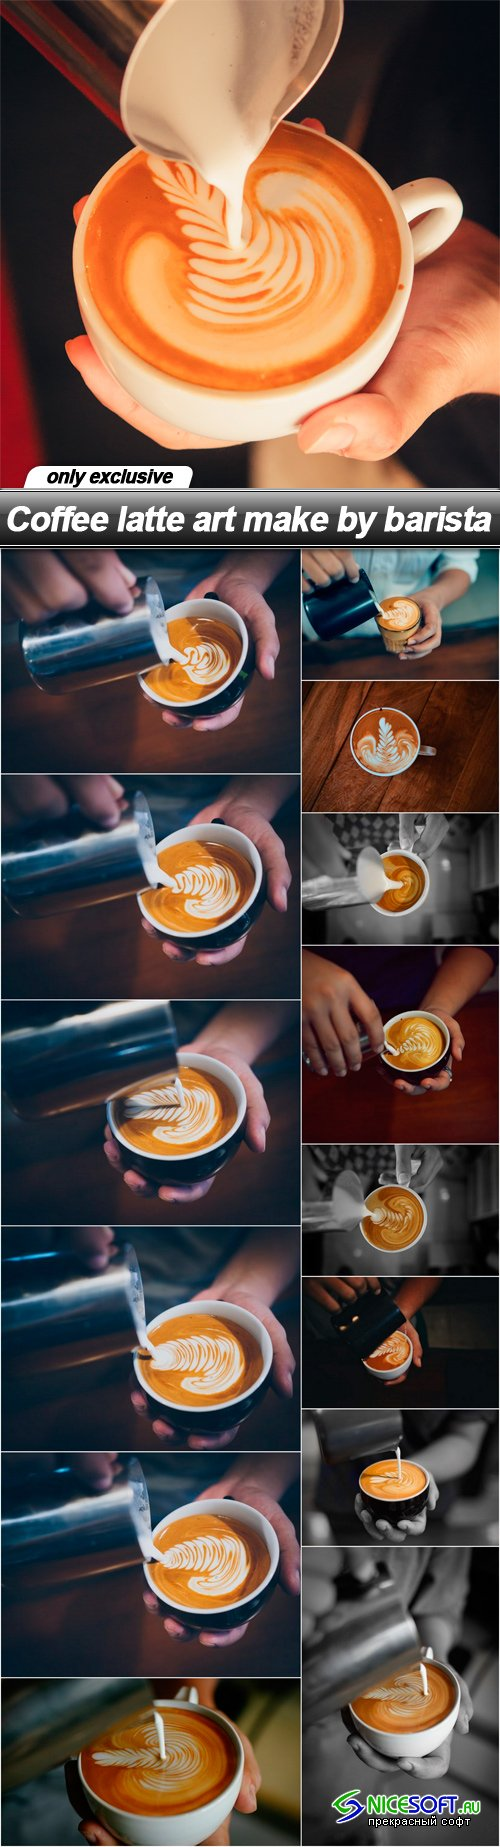 Coffee latte art make by barista